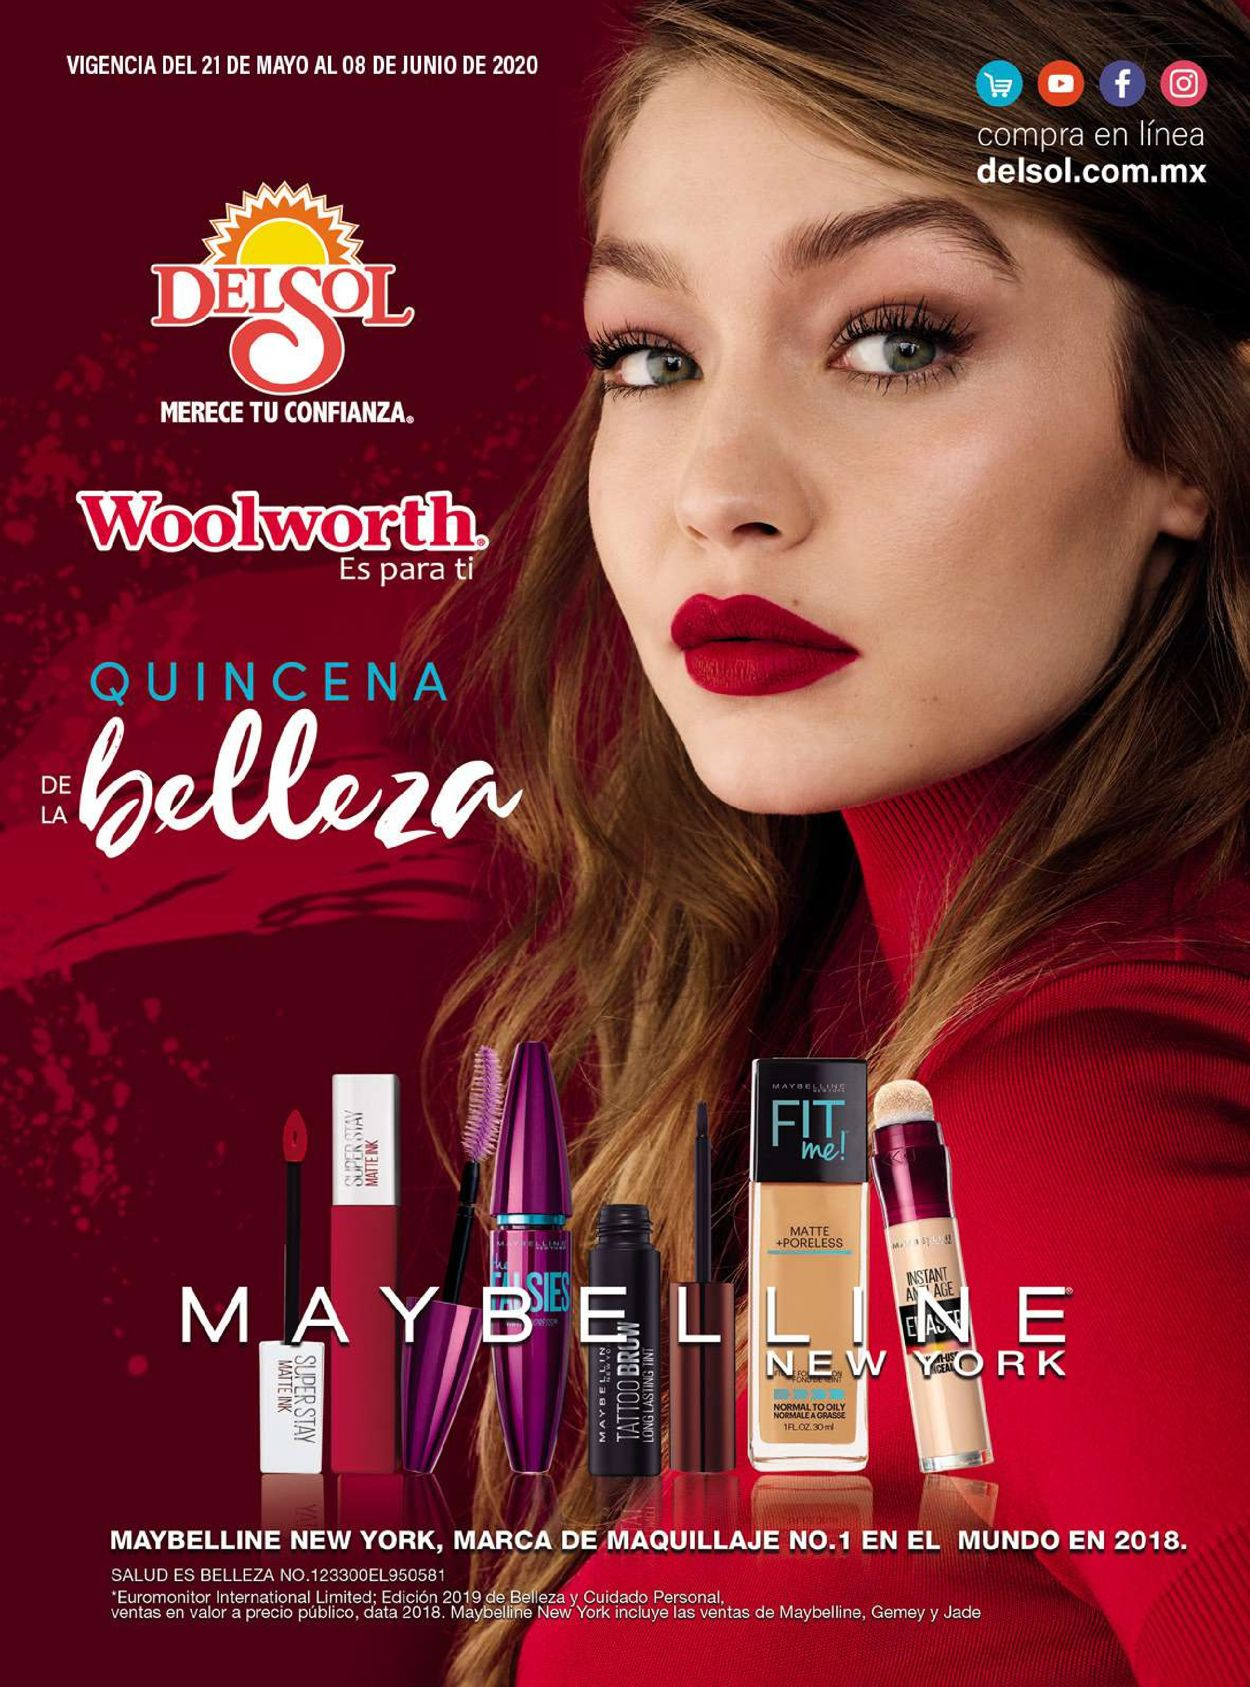 Woolworth Folleto - 21.05-08.06.2020